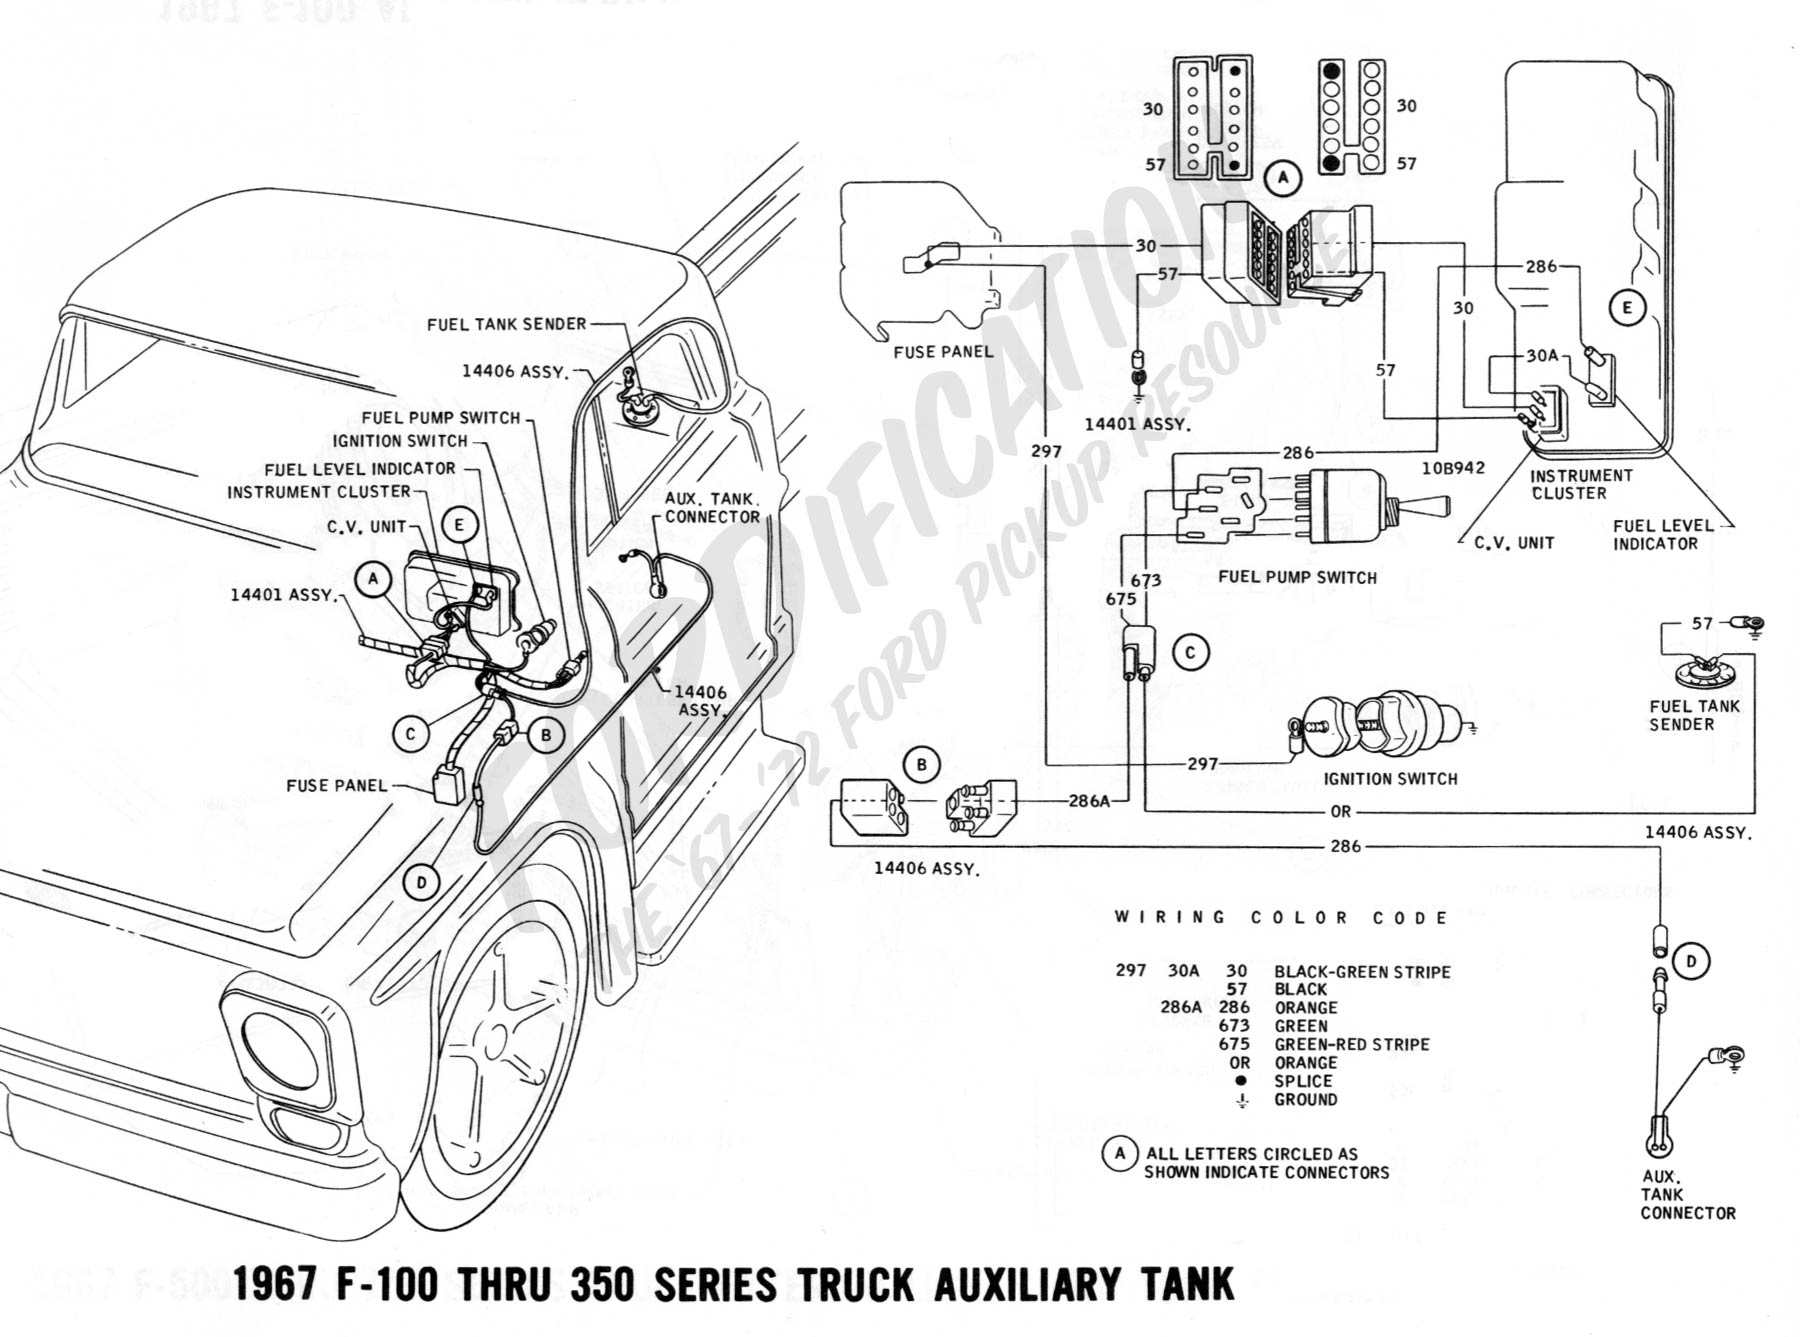 hight resolution of 1990 ford ranger fuel line diagram wiring diagram sort1967 ford truck wiring diagram 14